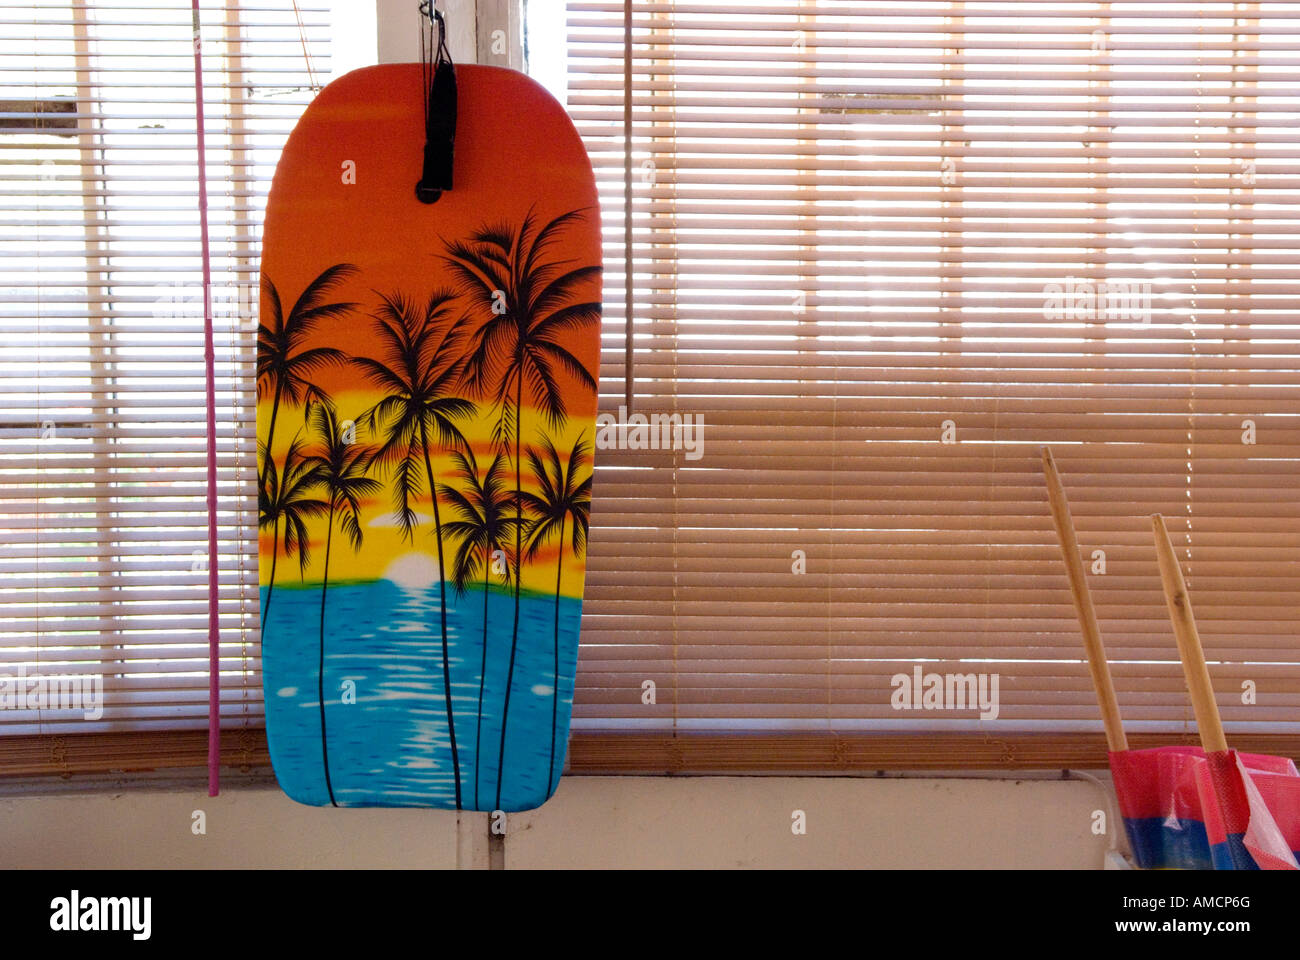 interior of beach house with wooden blind over window and body board with palm tree motif hanging against it - Stock Image